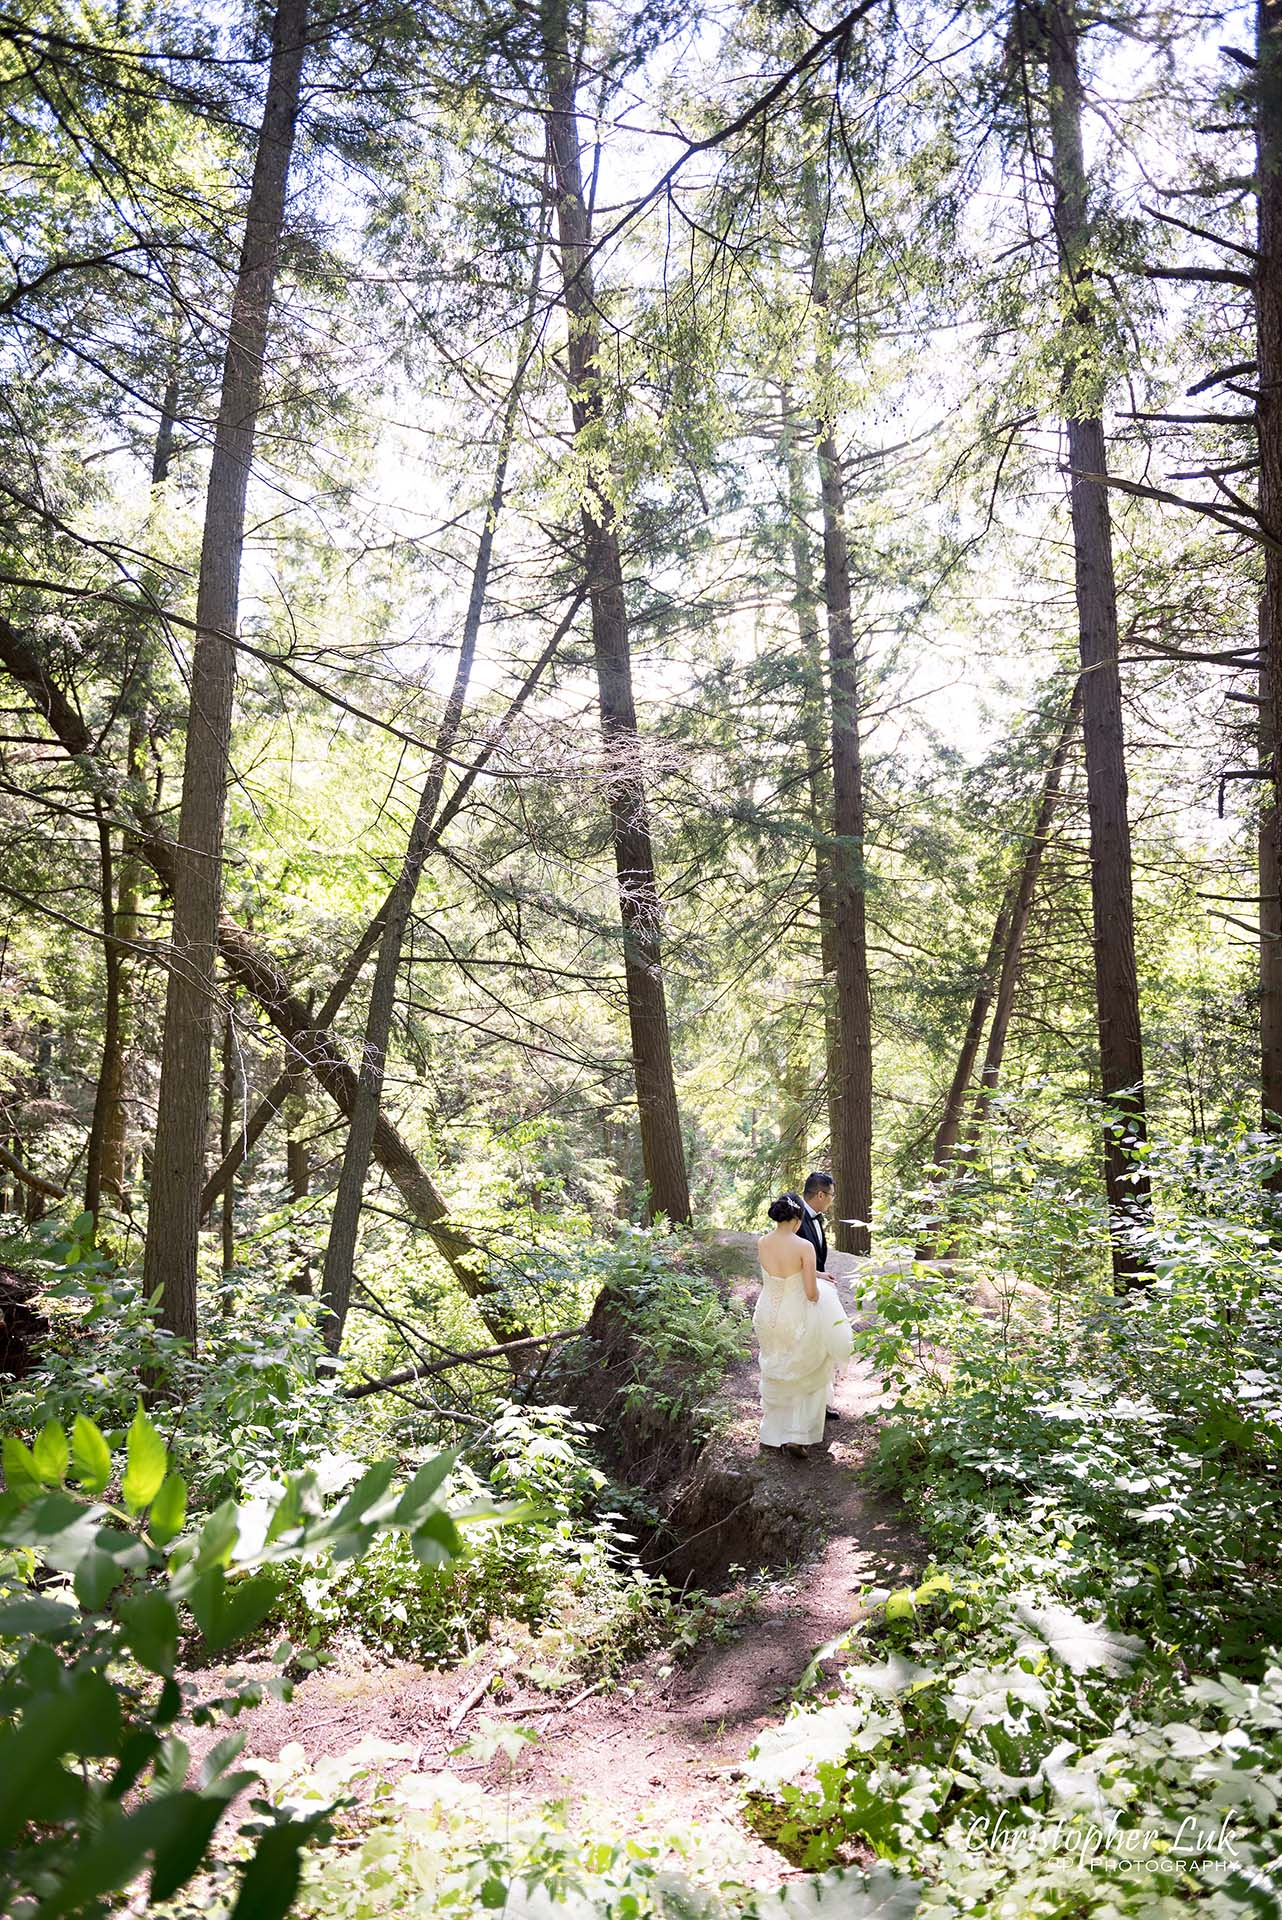 Christopher Luk Toronto Christian Community Church Kleinburg McMichael Art Gallery Presidente Banquet Hall Vaughan Wedding Photographer Bride Groom Natural Candid Photojournalistic Walking Climbing Forest Cliff Lookout Overlook Woods Wooded Area